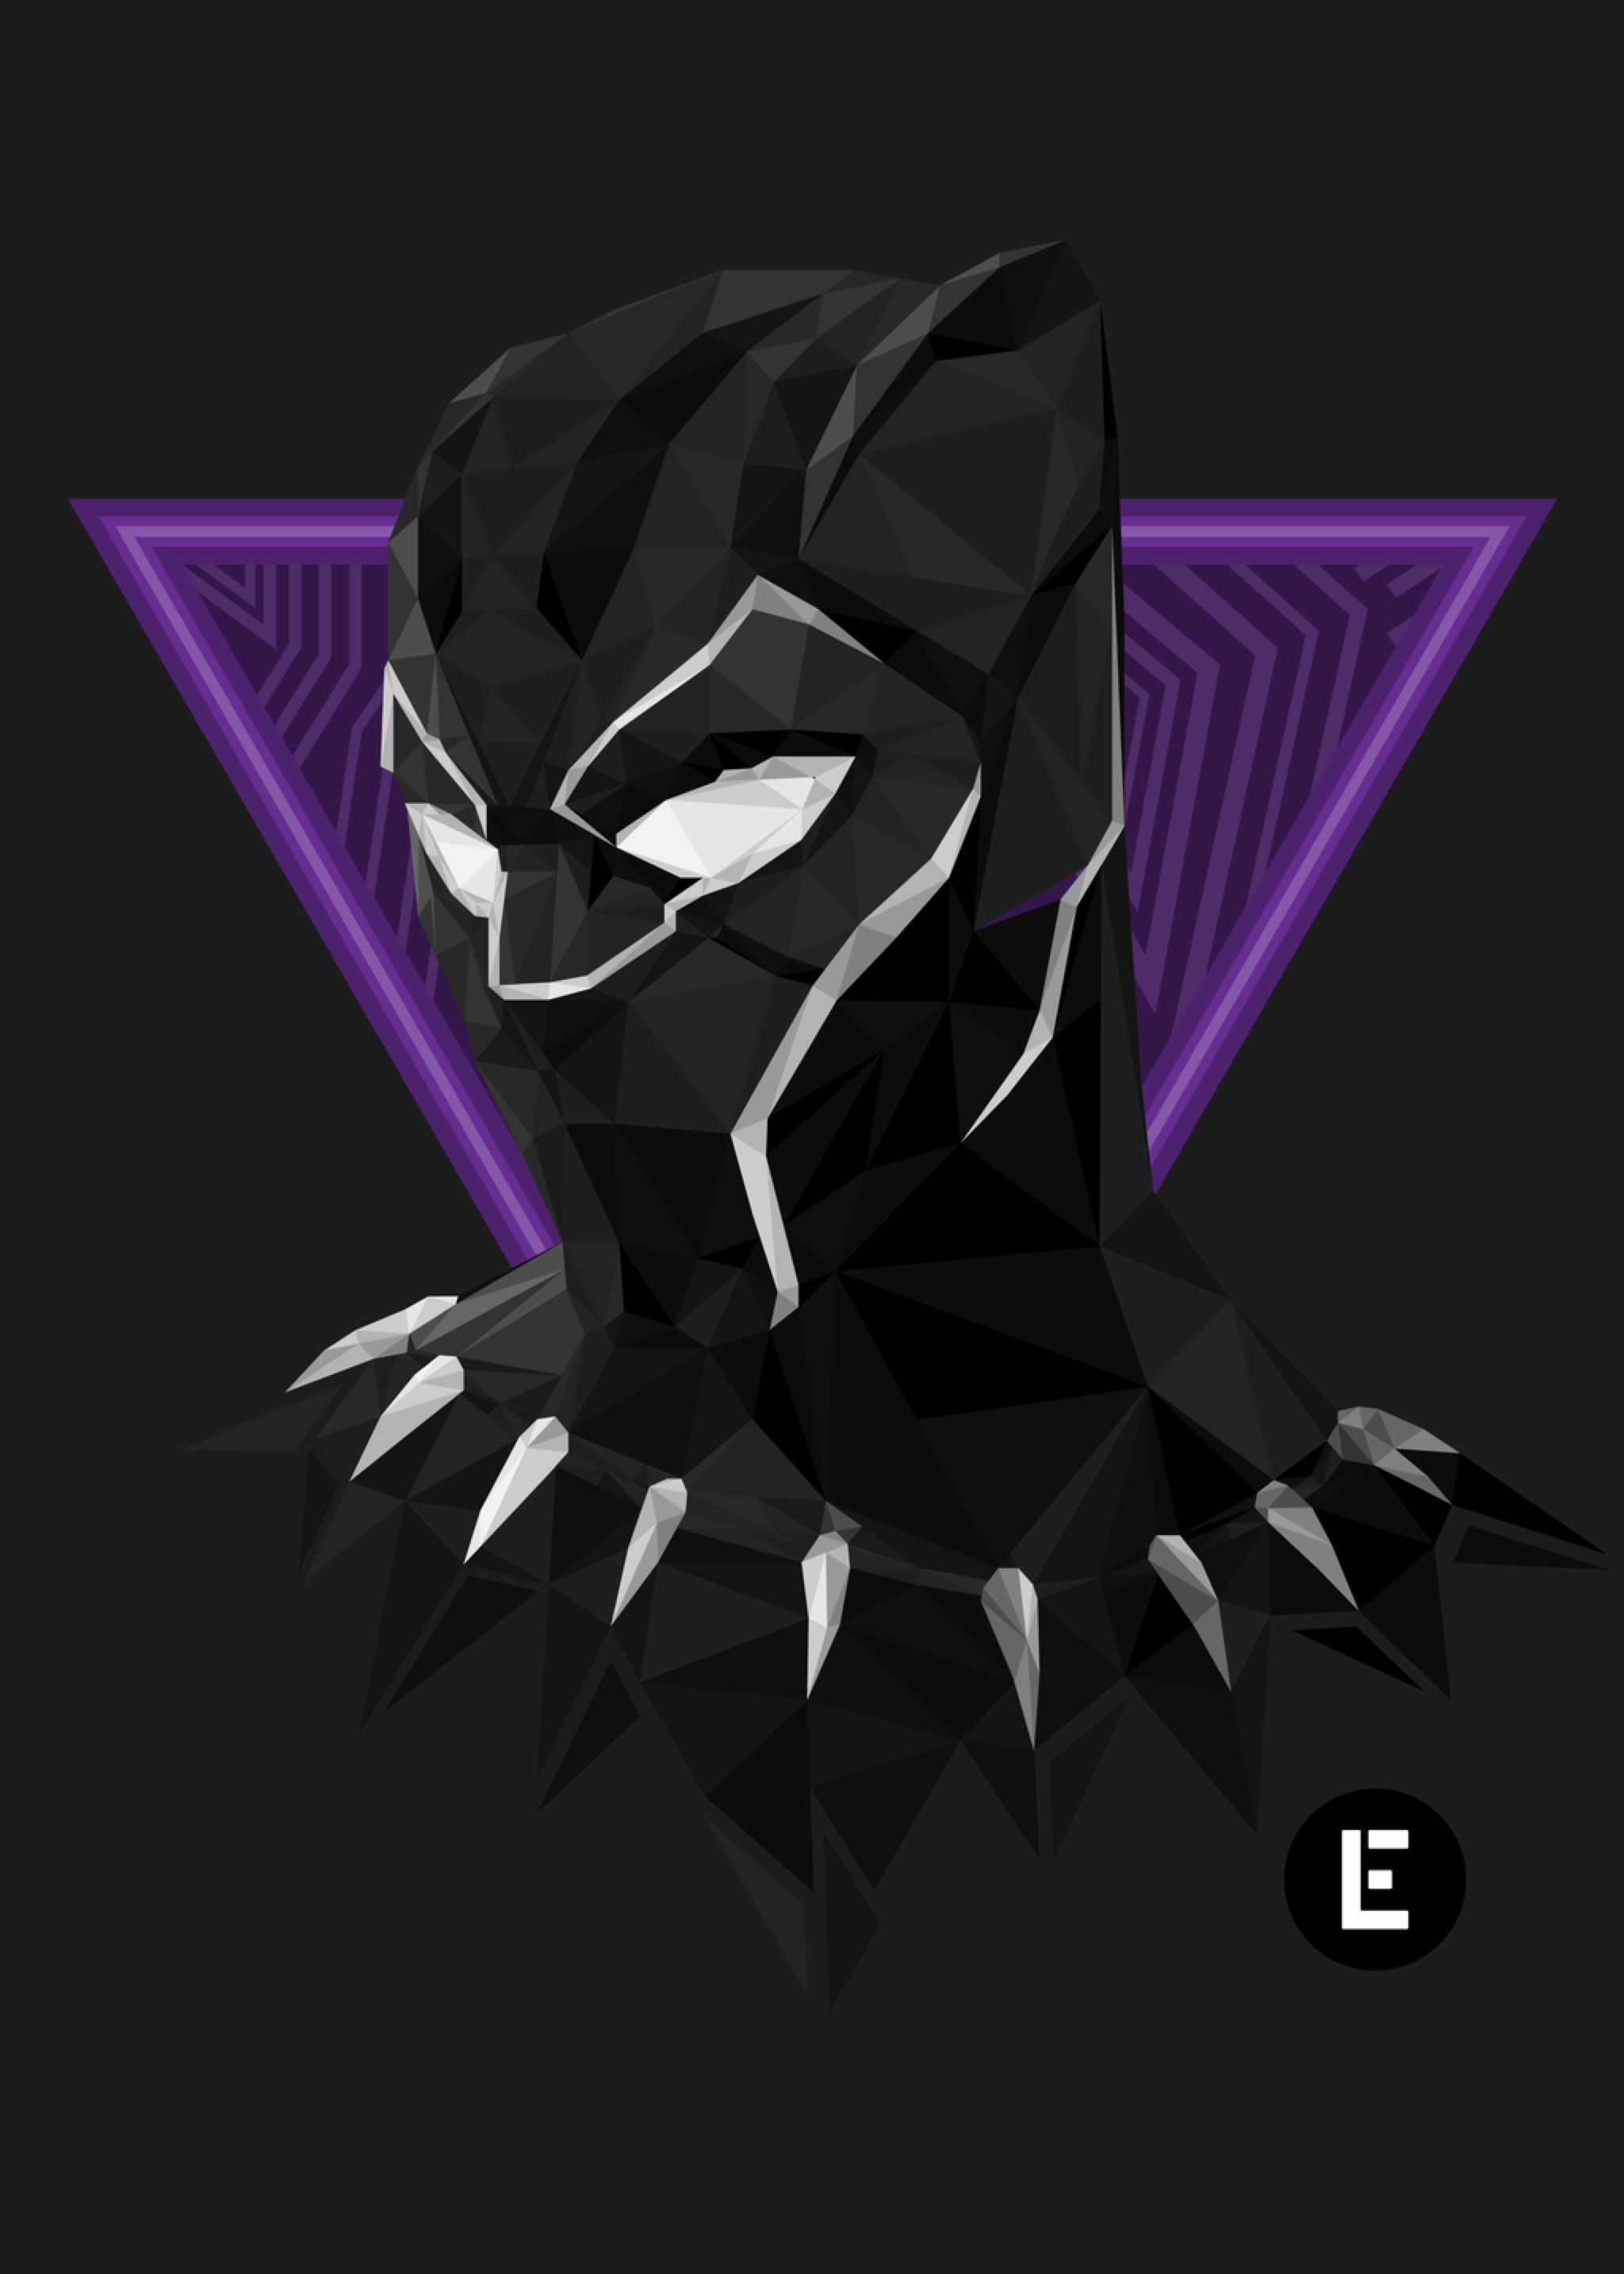 Geometric Black Panther By Thelivingethan On Deviantart Black